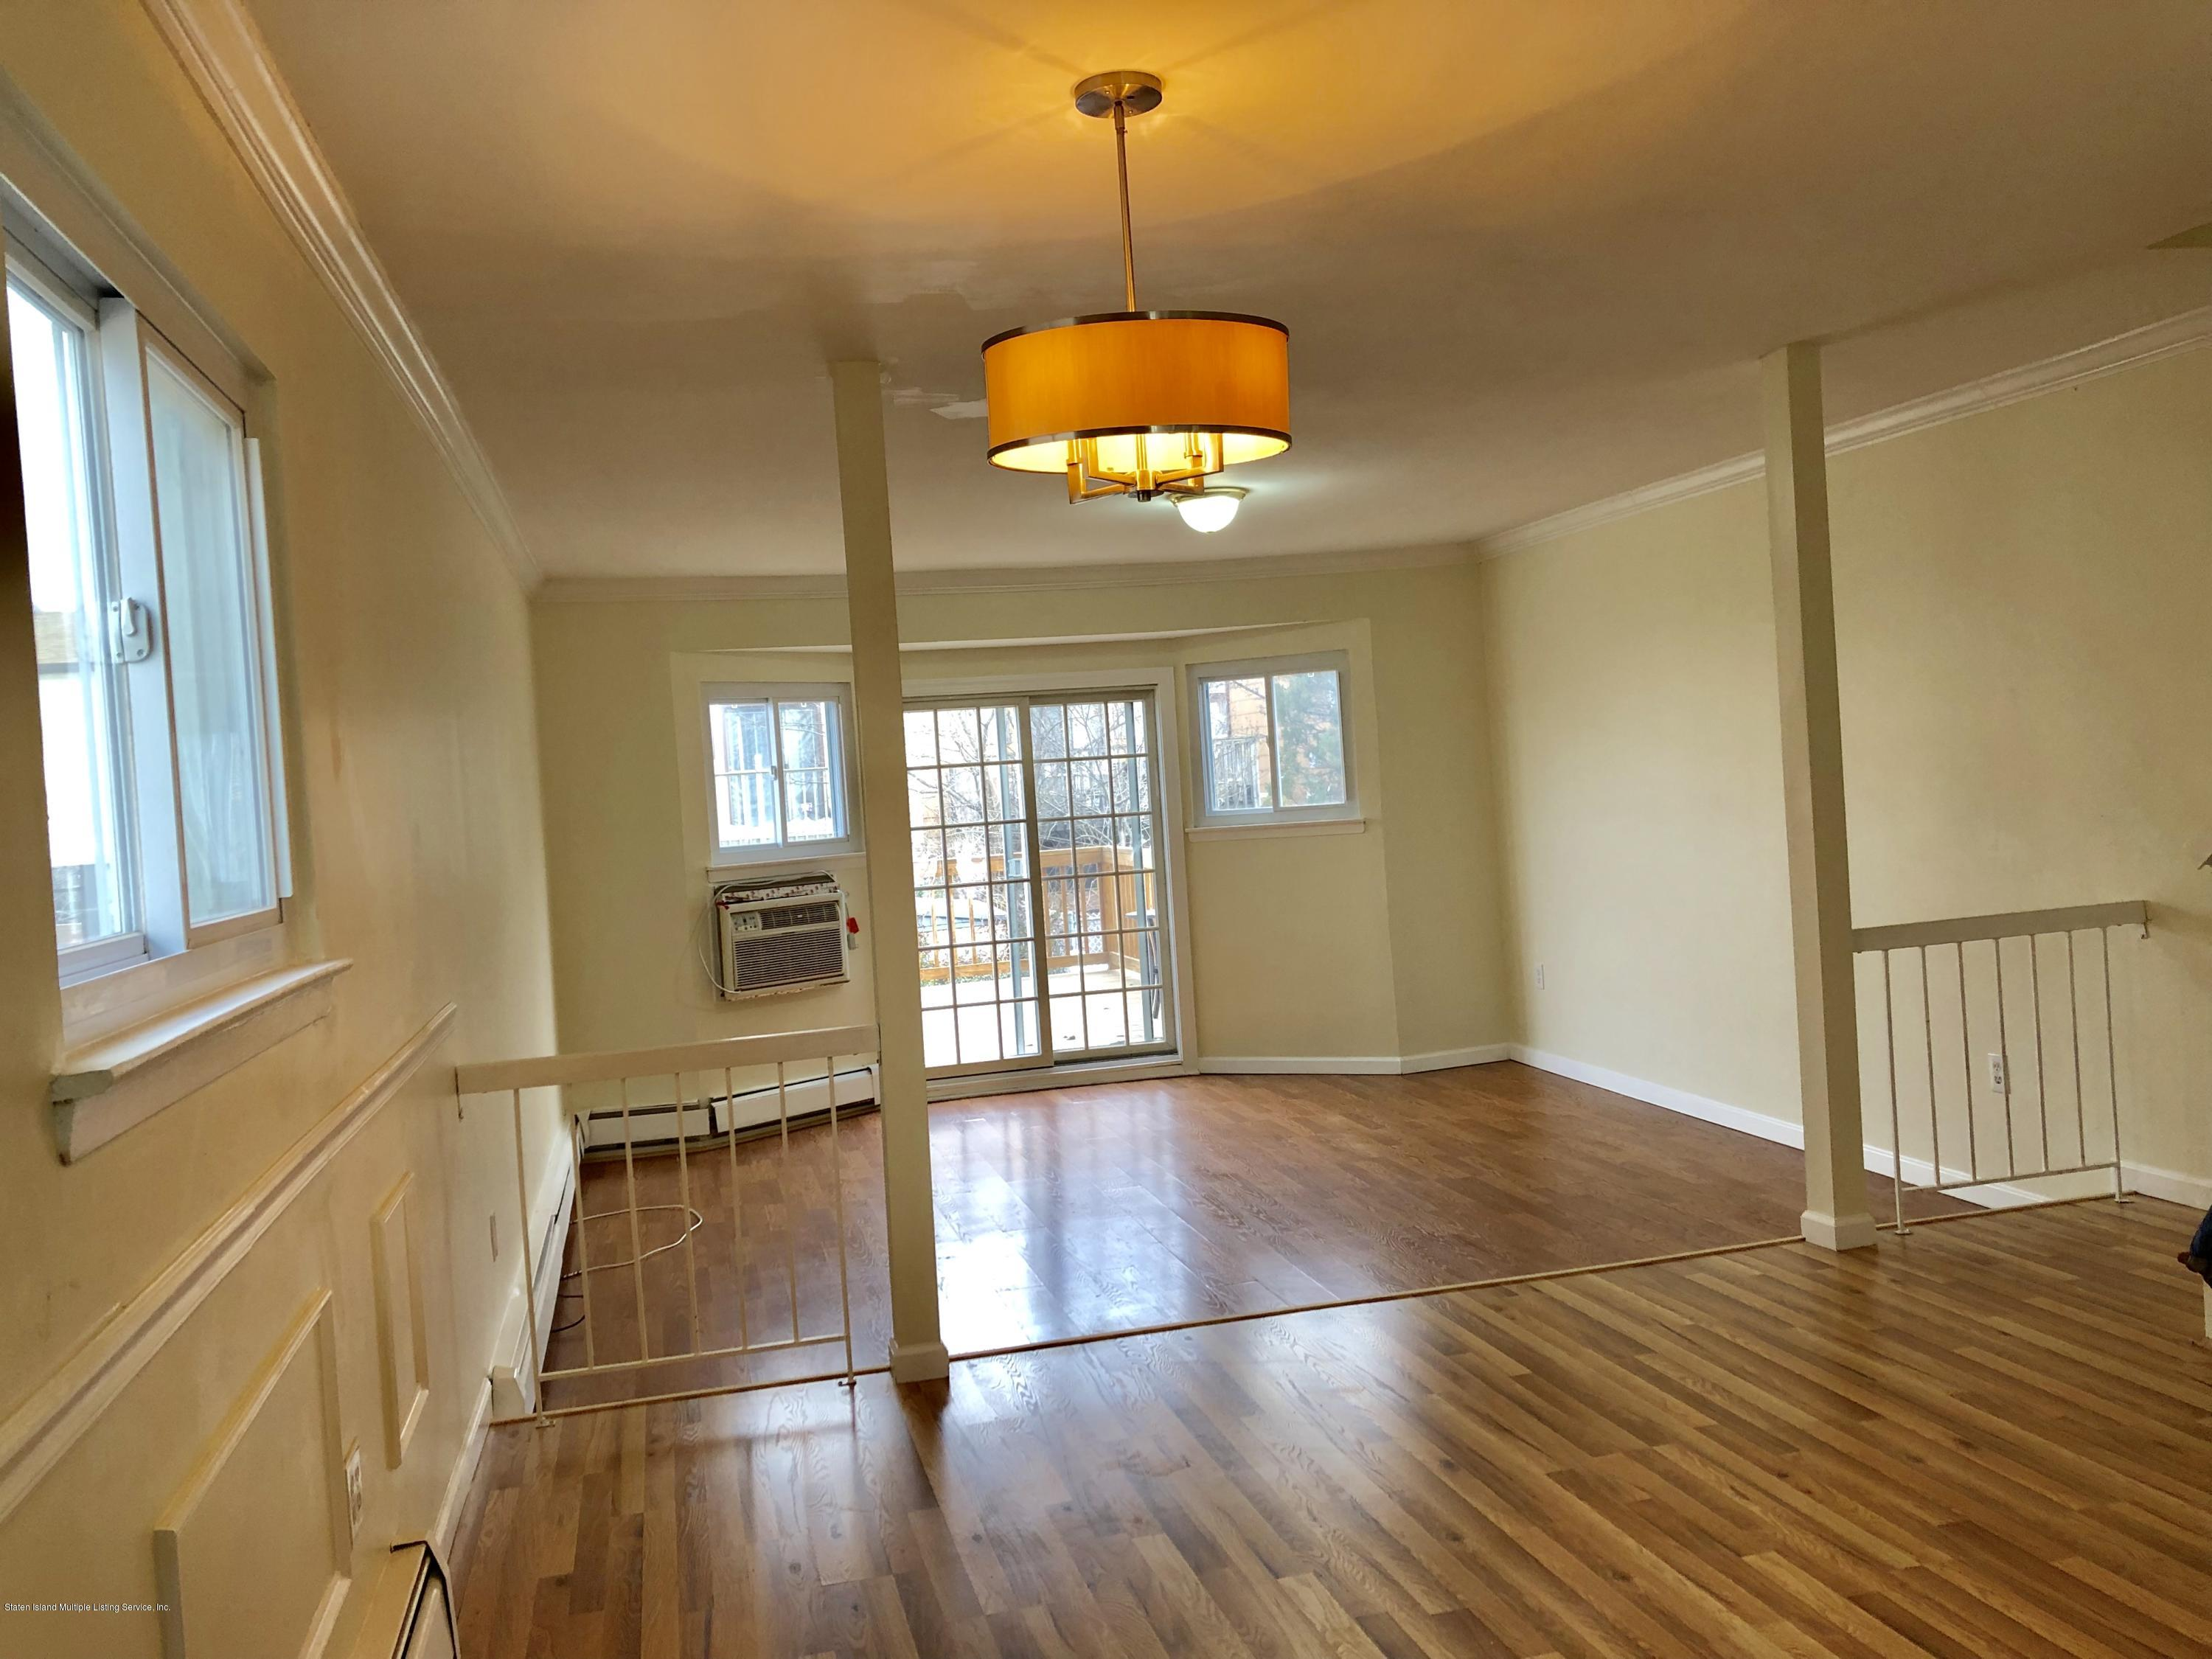 Single Family - Semi-Attached 205 Mcveigh Avenue  Staten Island, NY 10314, MLS-1123847-3